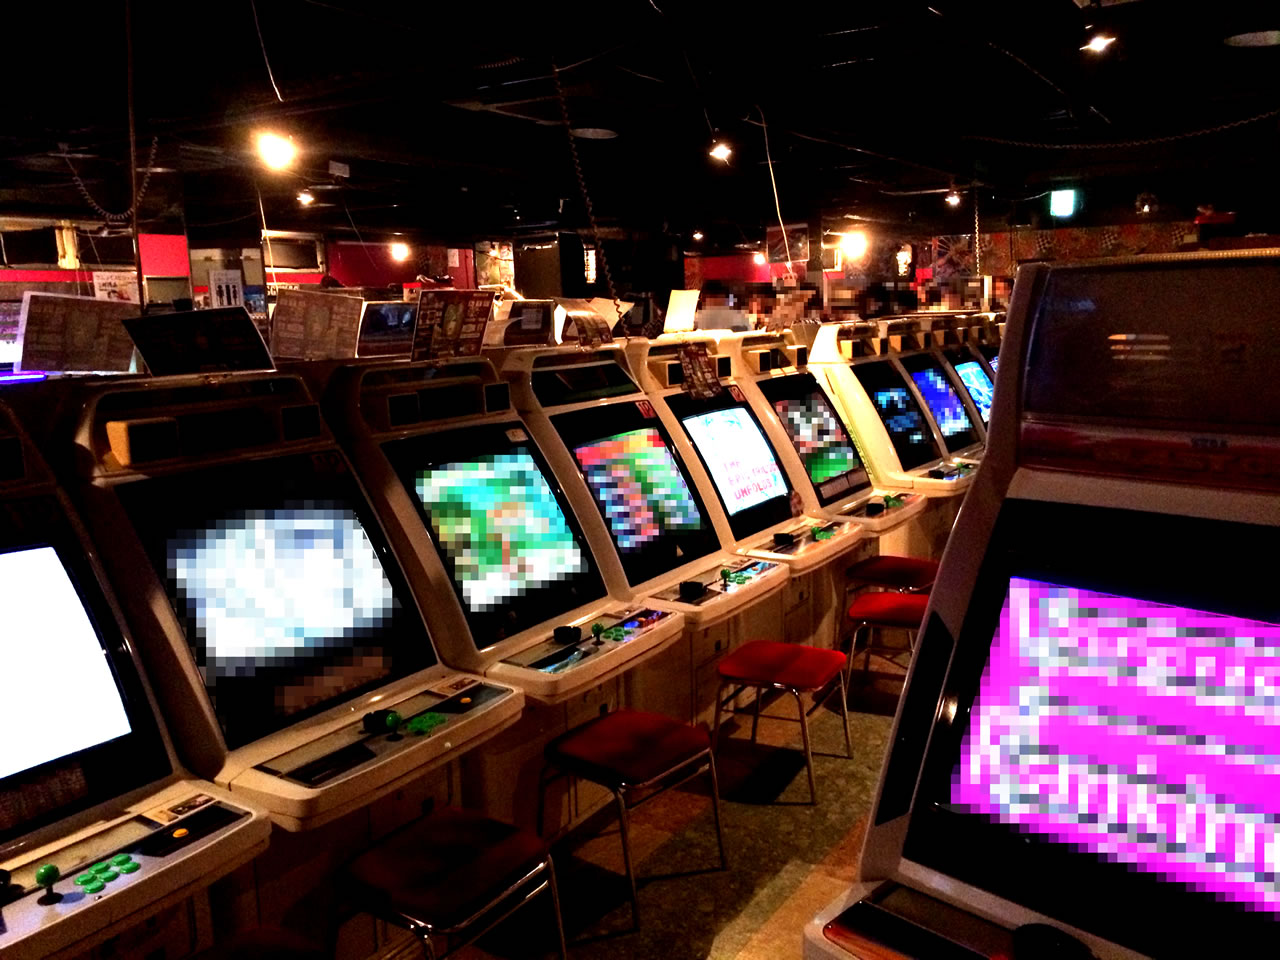 arcade-game-centers-are-becoming-museum-sp-001-007